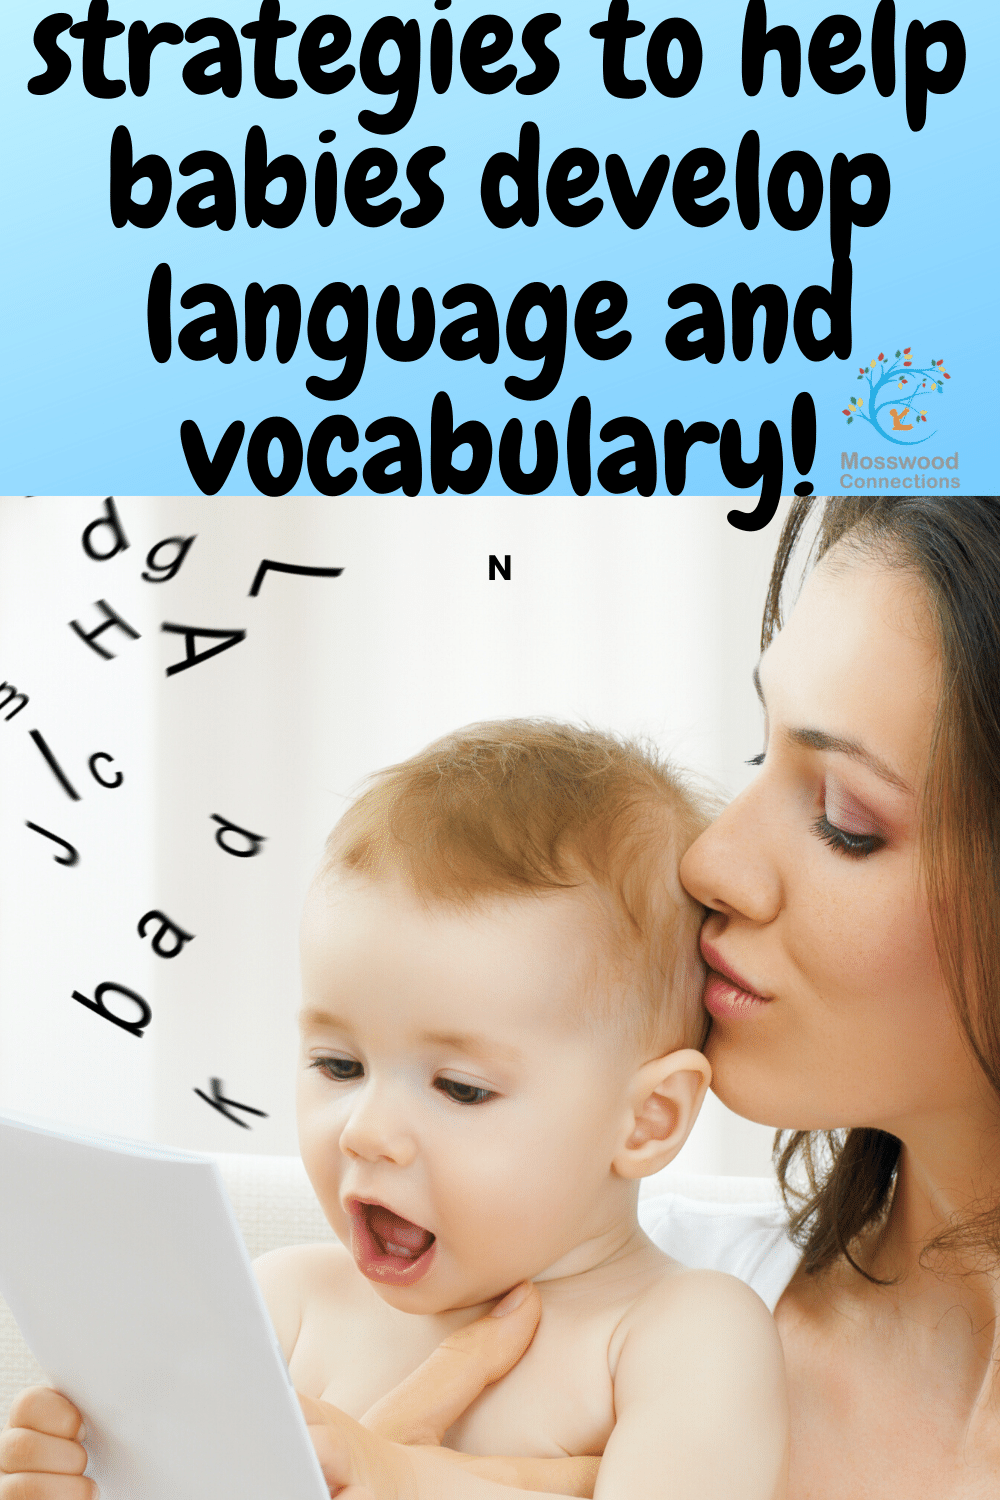 How to help babies develop vocabulary and language #mosswoodconnections #speechandlanguage #babies #parenting